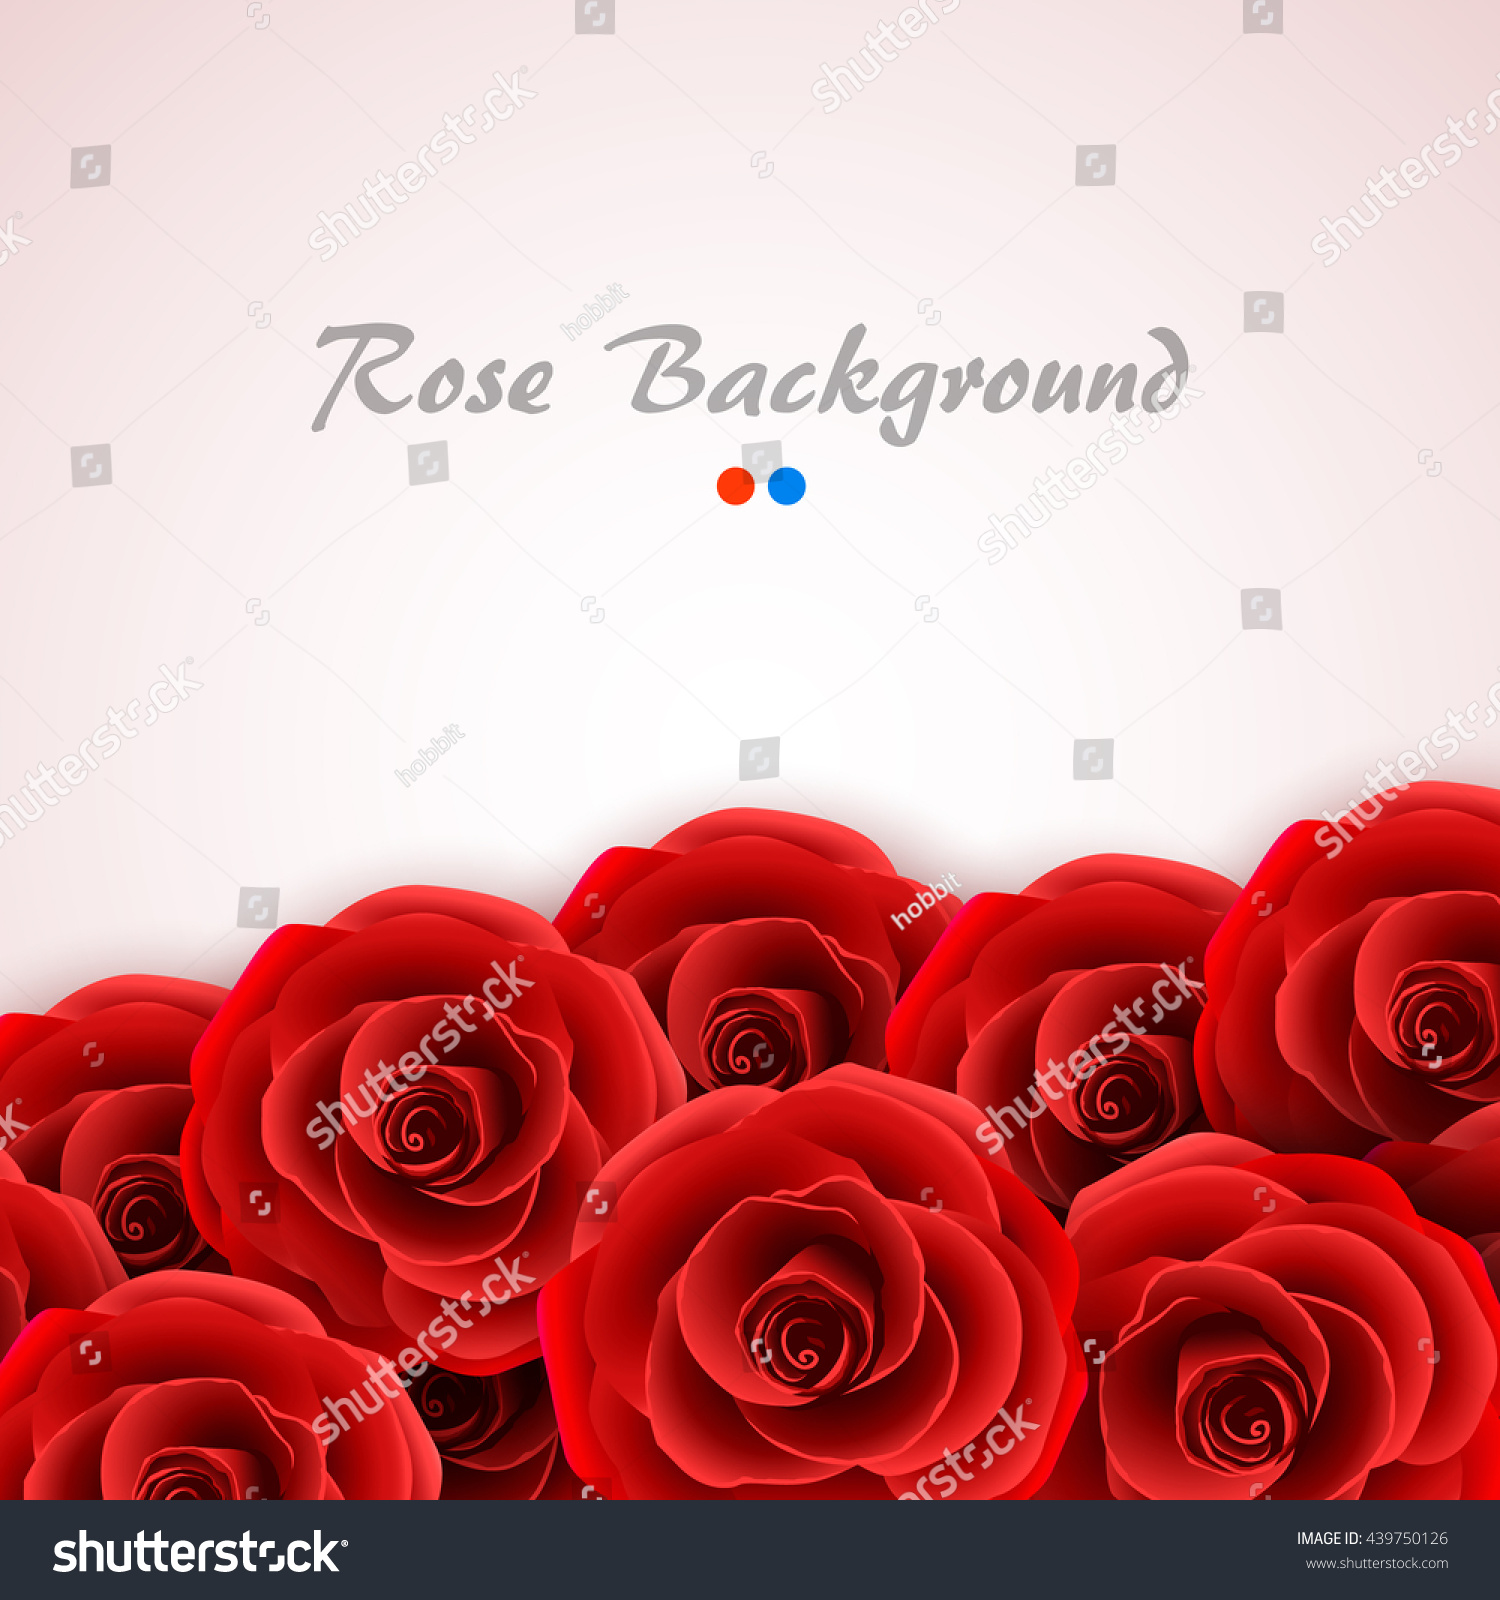 Red Roses Background Rose Cover Wedding Stock Vector HD (Royalty ...